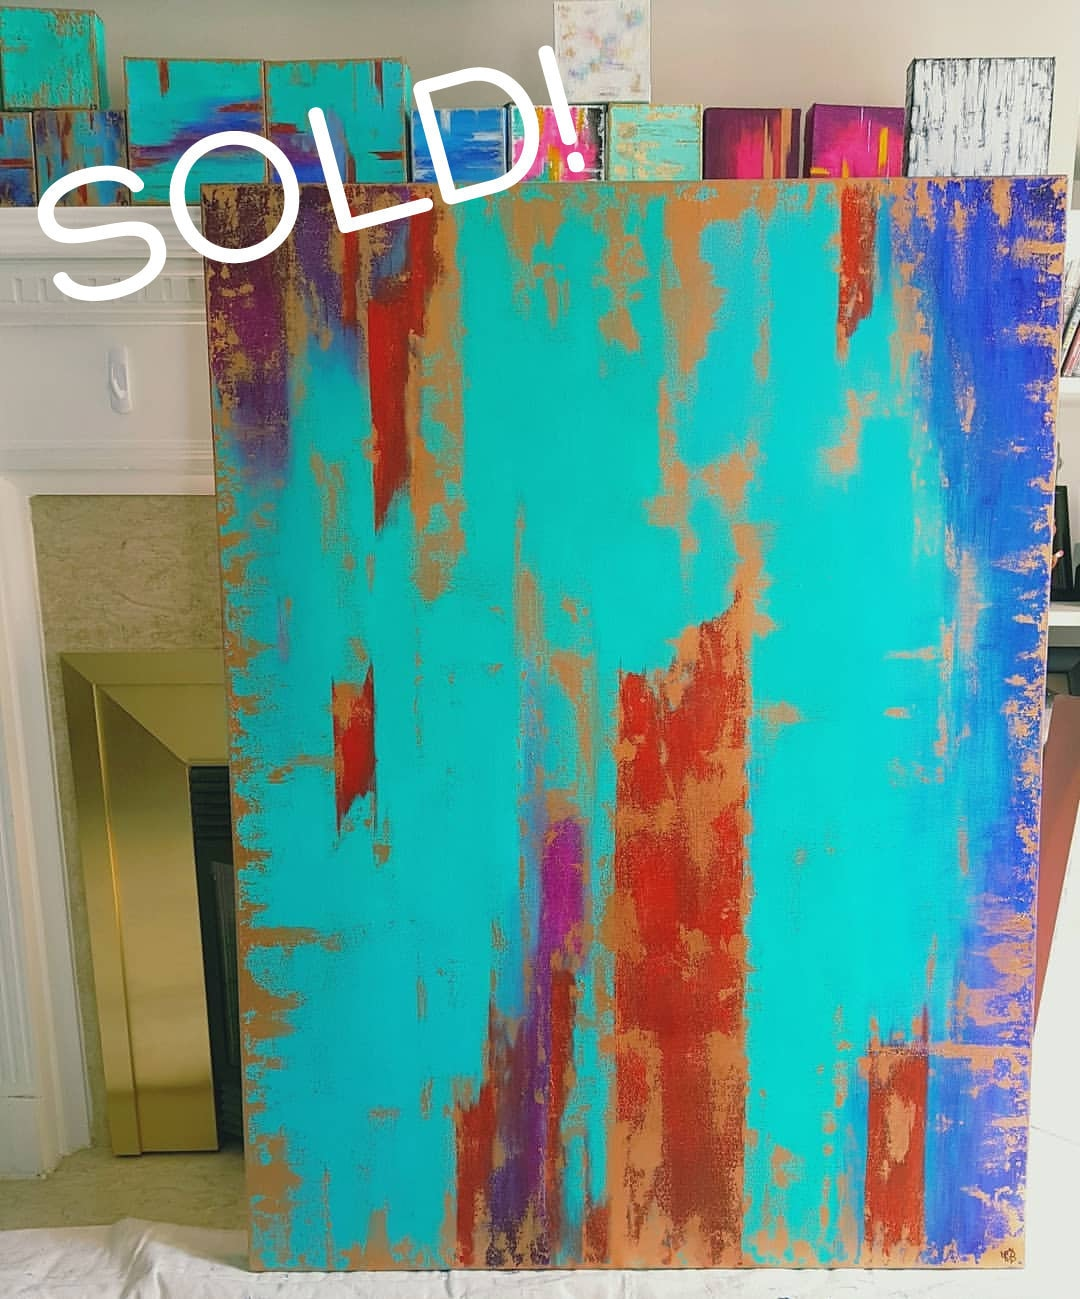 Sold! Patina Blue, Acrylic on Canvas, 36x48